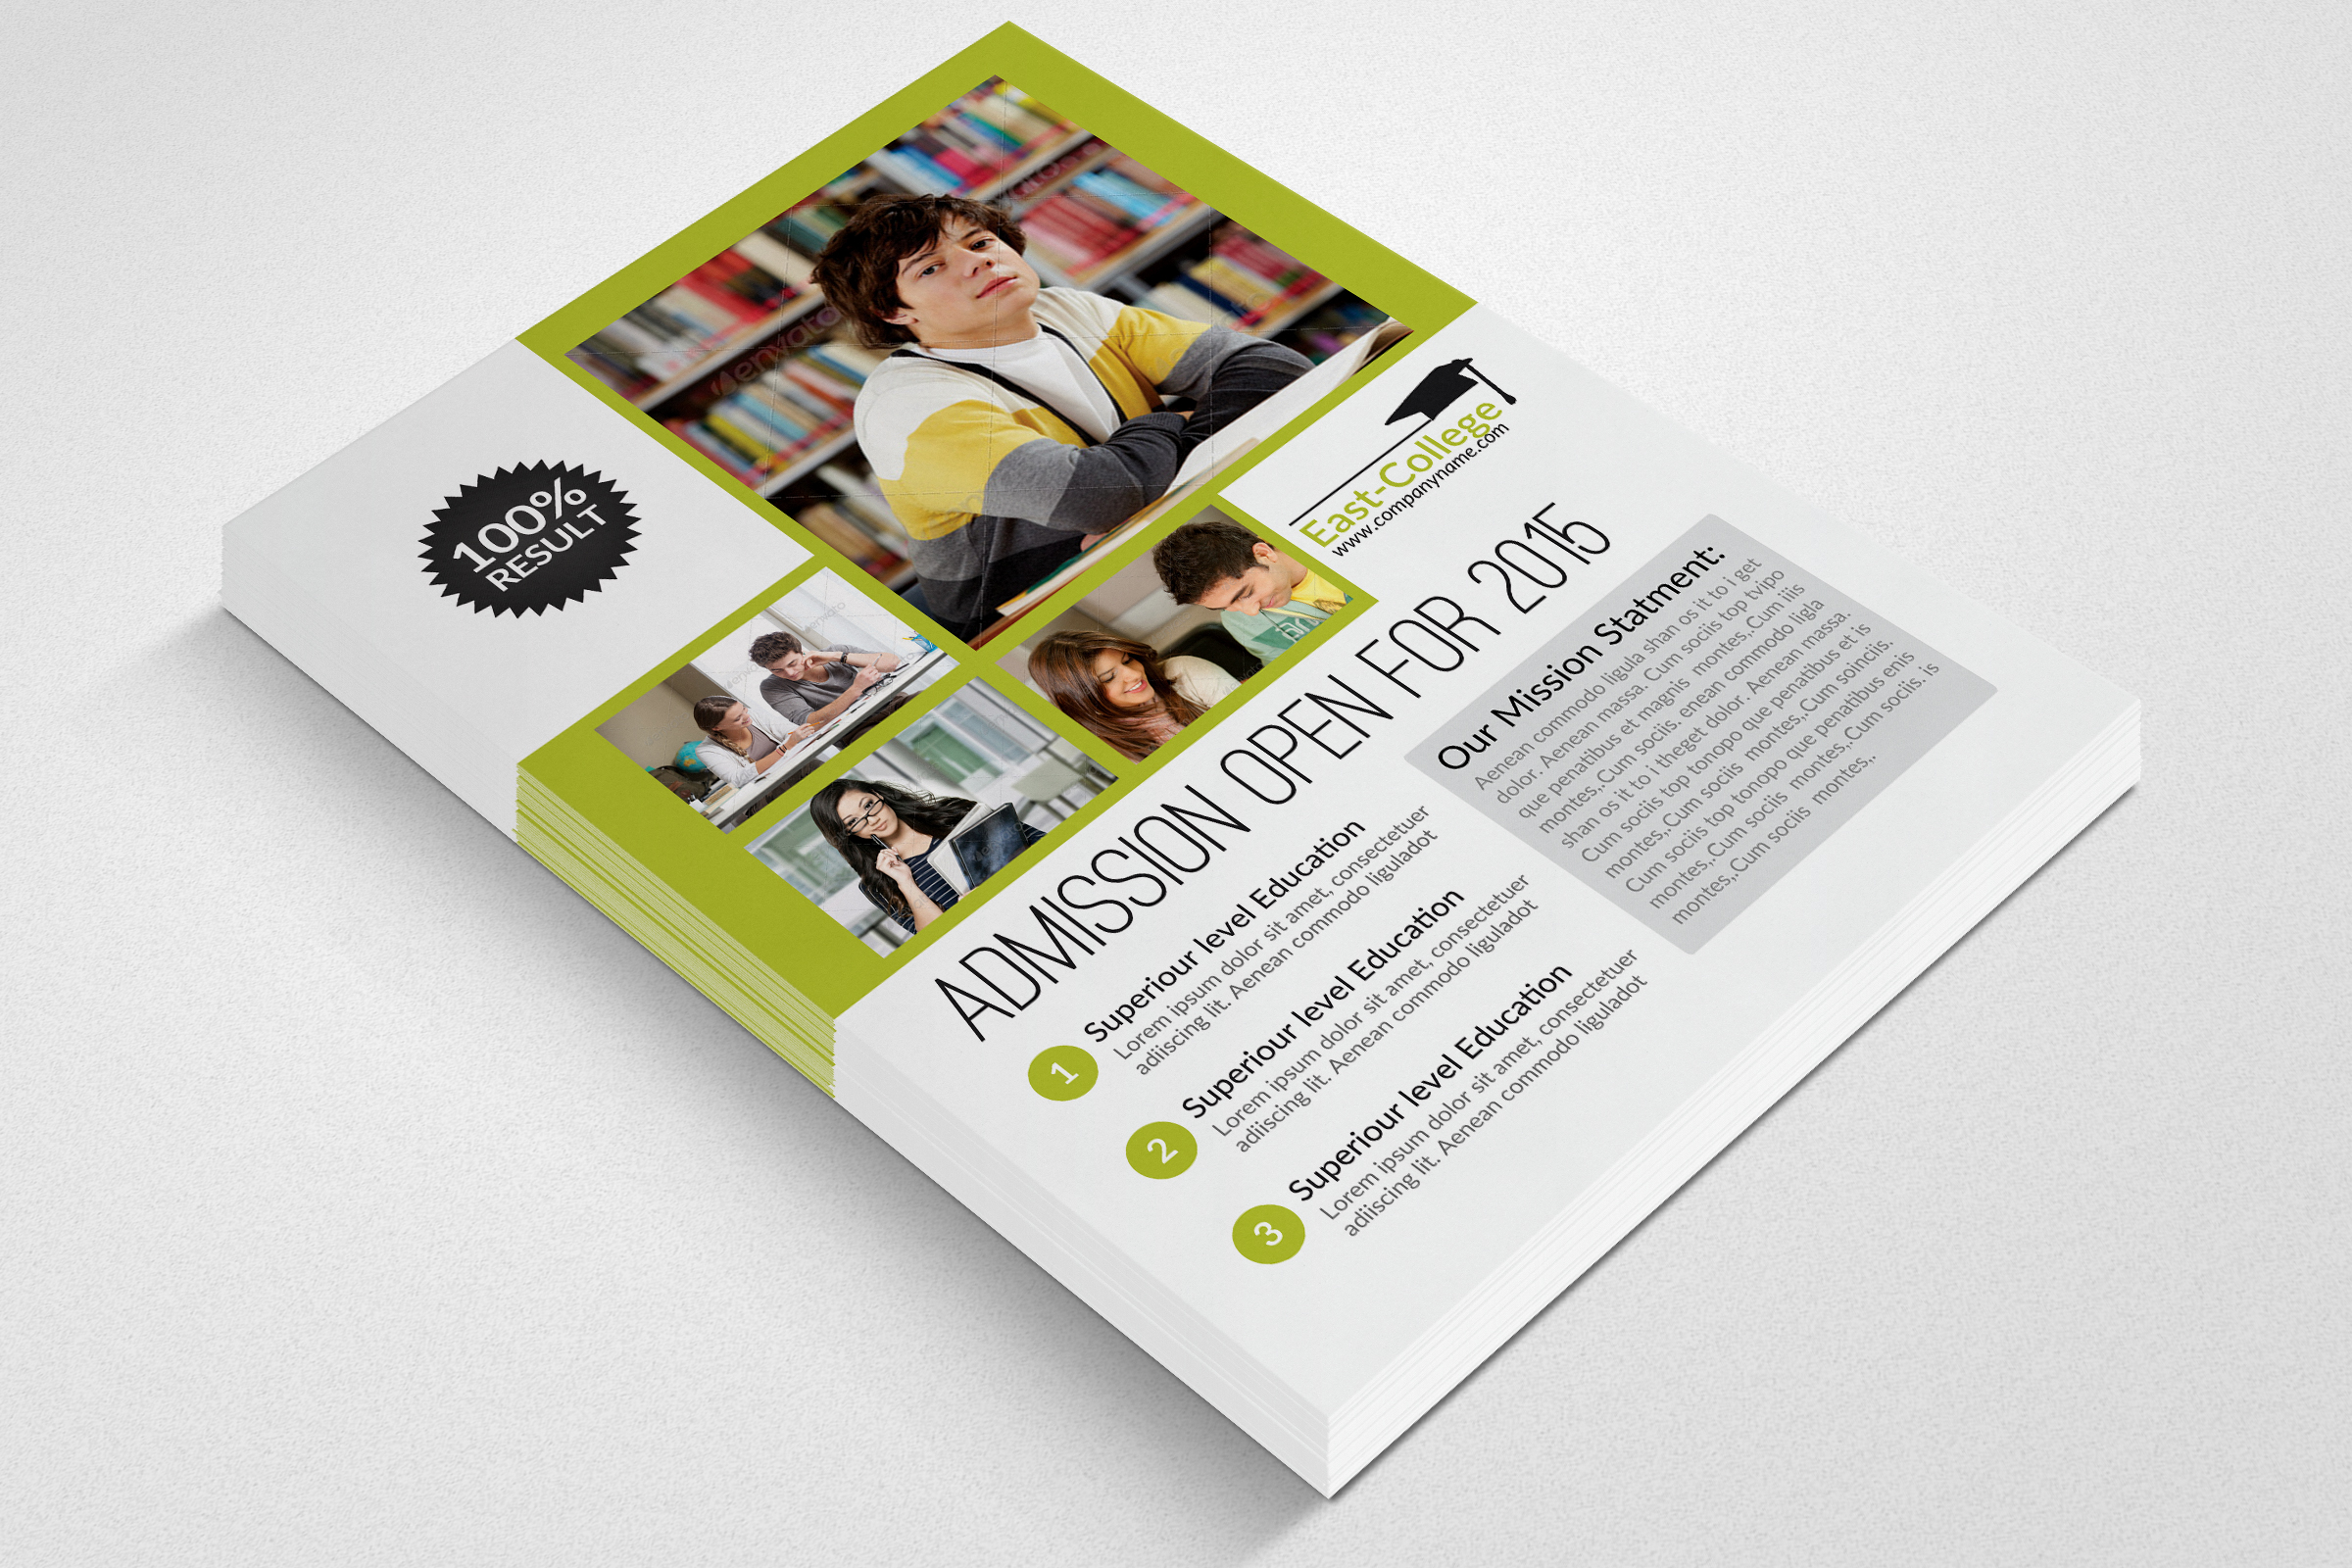 Senoir Education Flyer Template example image 3